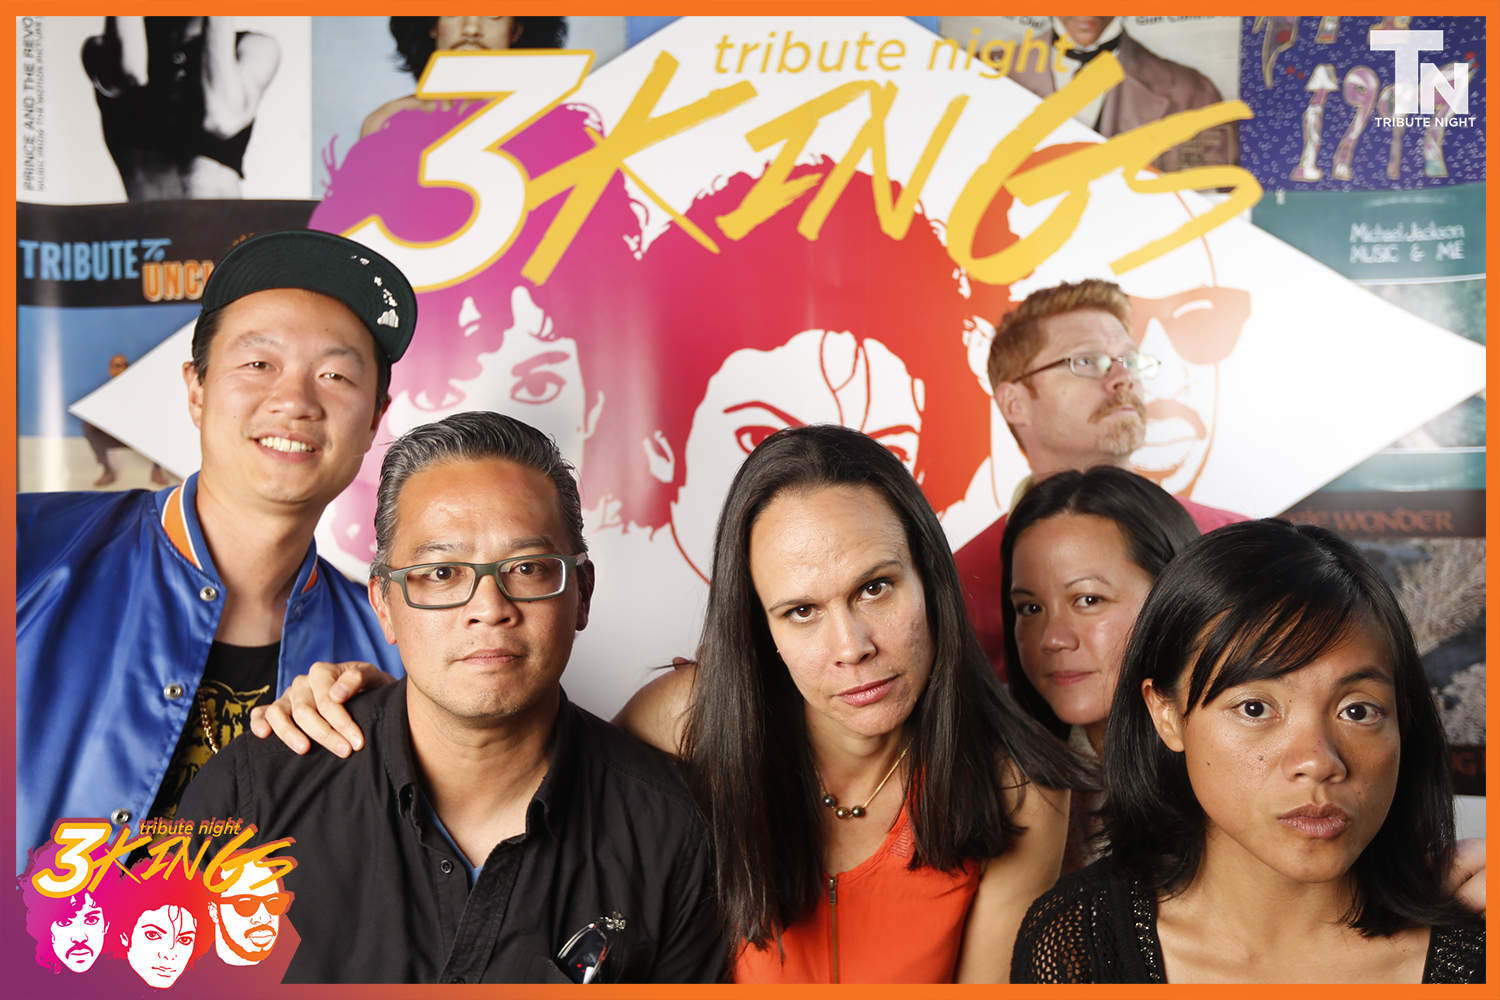 3kings Tribute Night Logo184.jpg